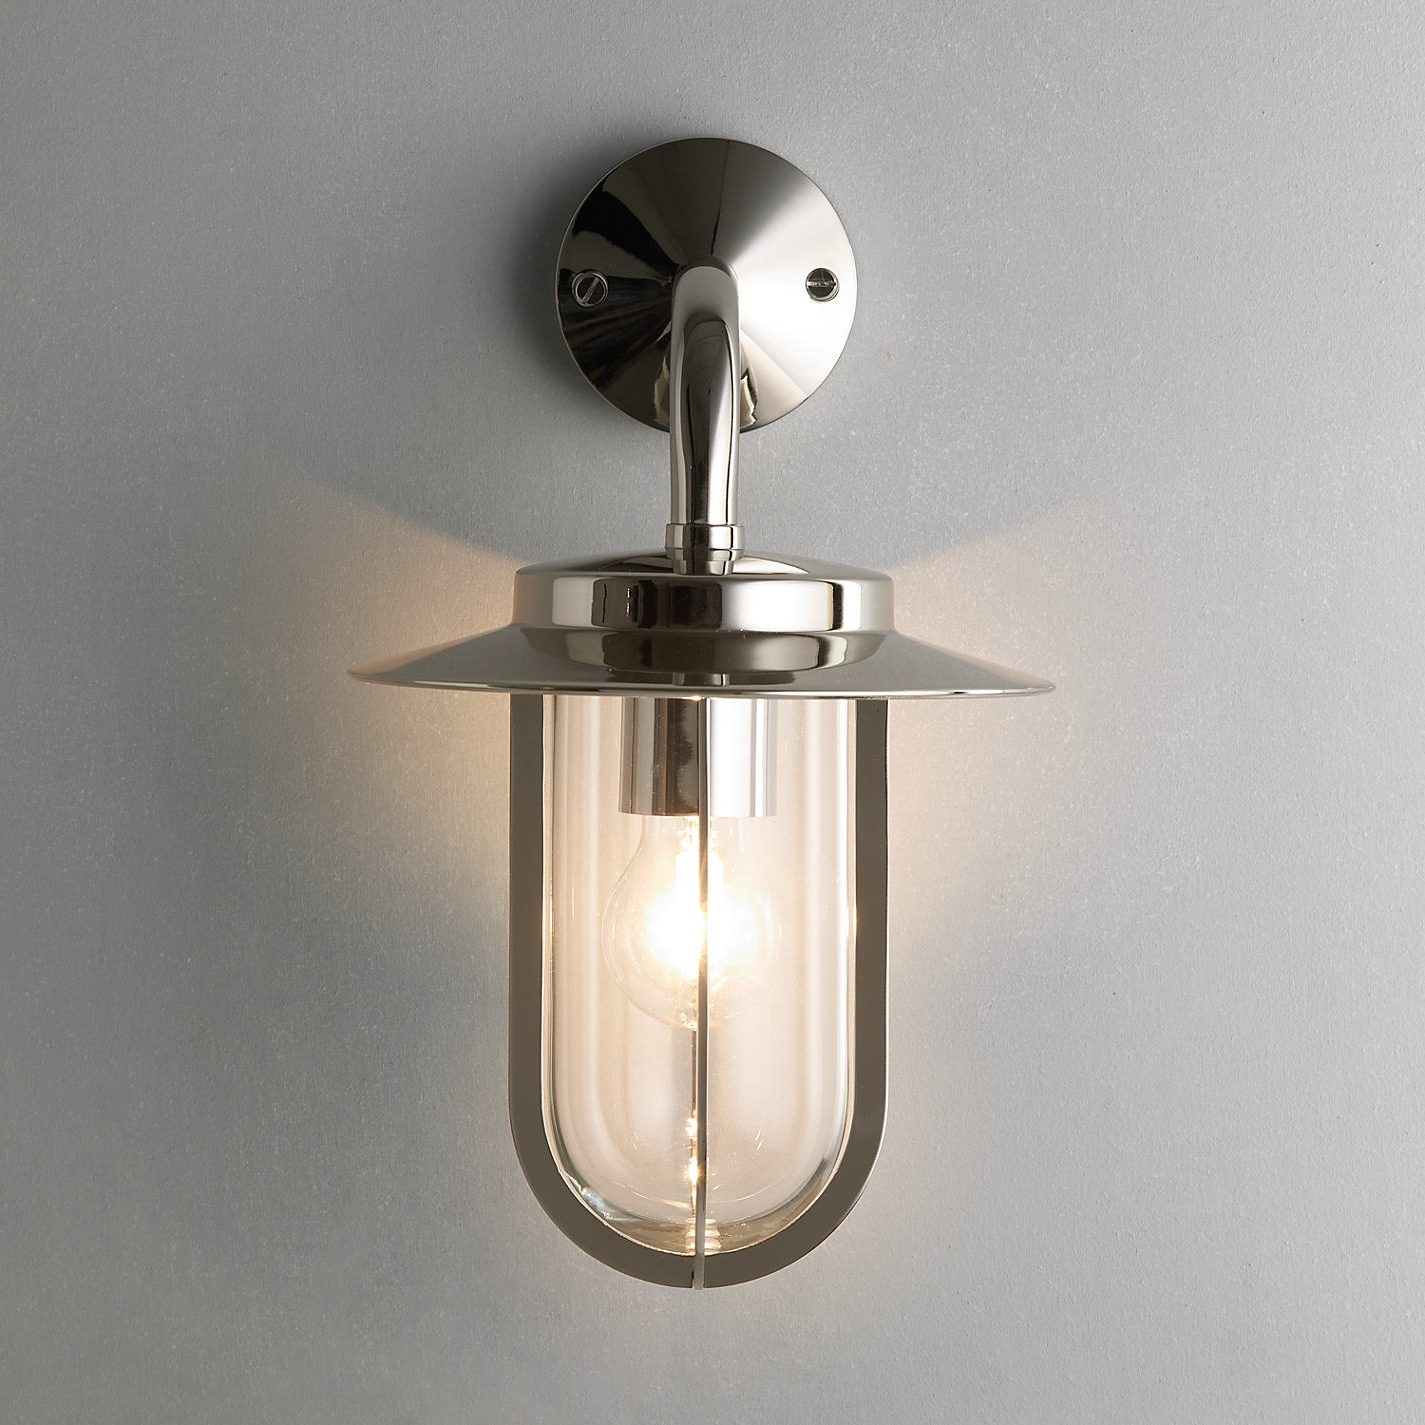 Best And Newest Light : Outdoor Wall Mount Lighting Lights Design Mounted Polished Intended For High Quality Outdoor Wall Lighting (View 14 of 20)